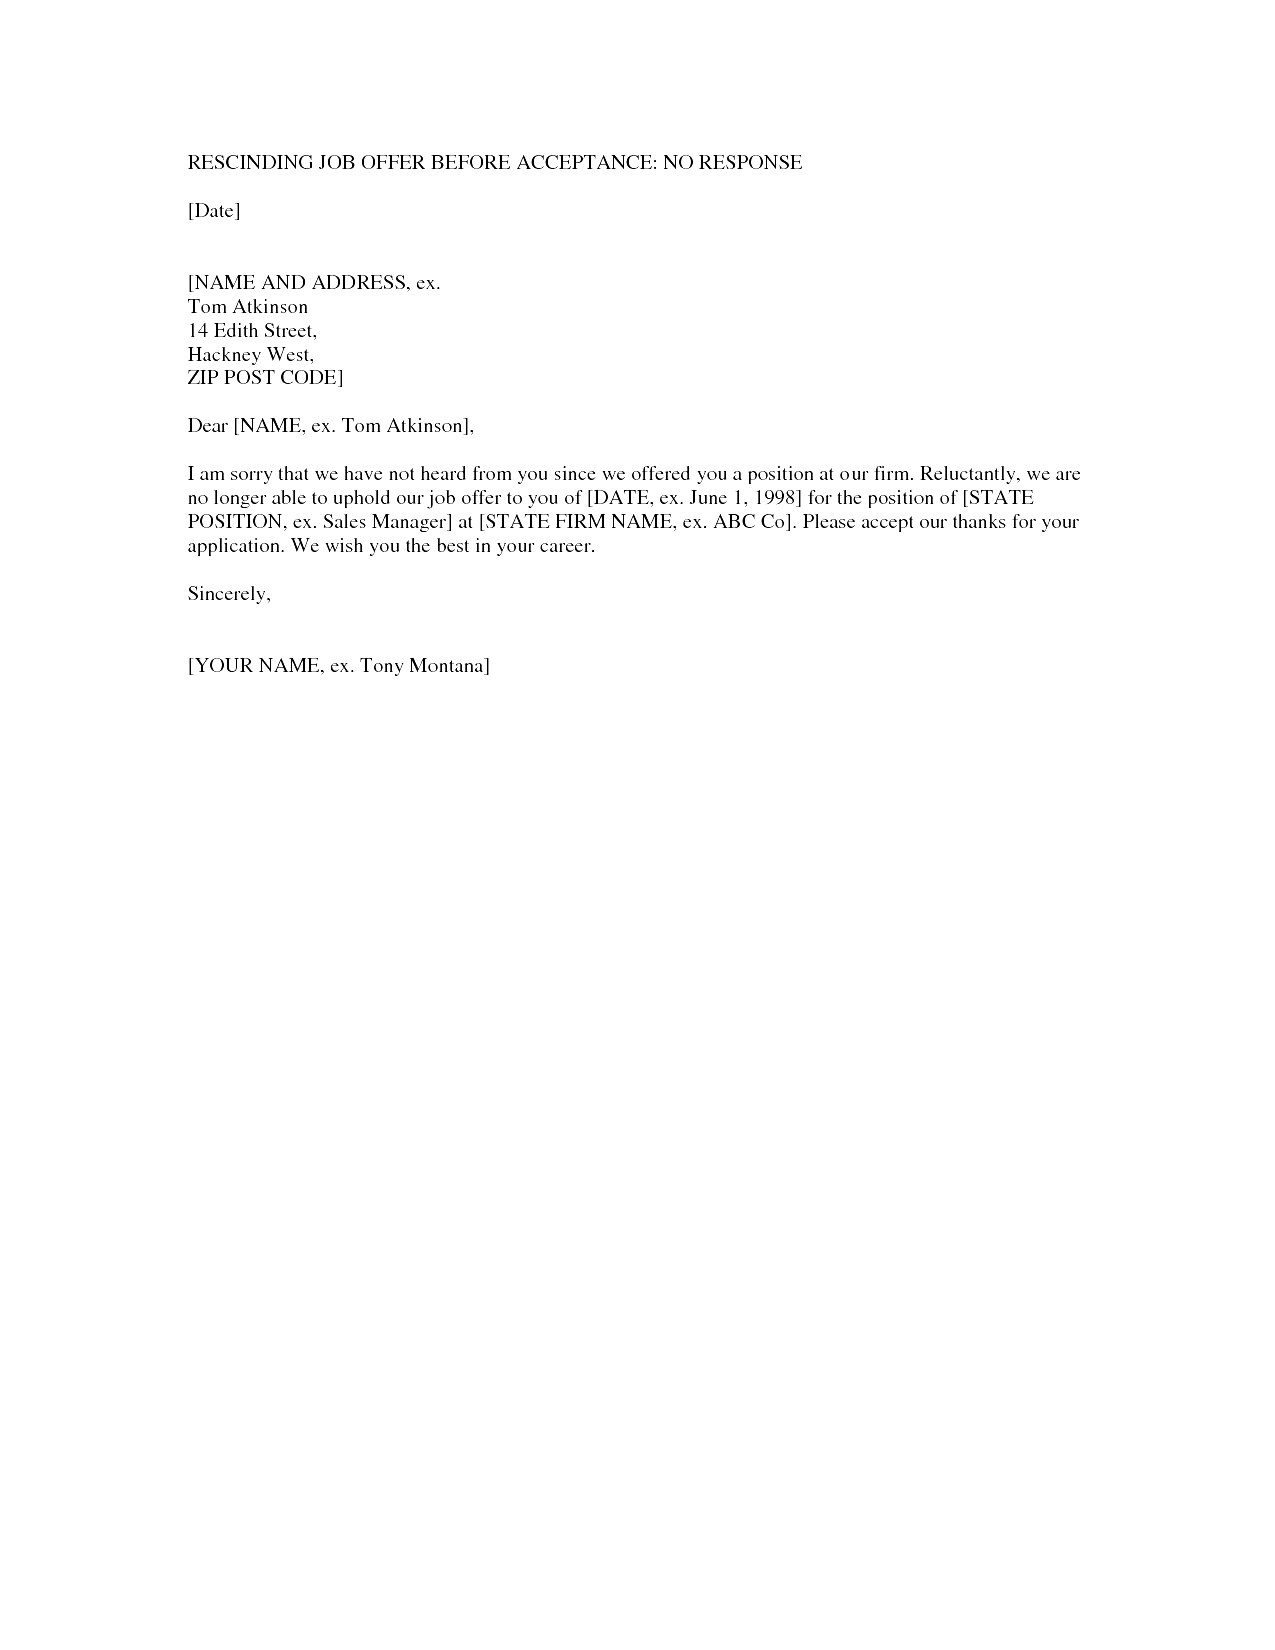 Rescinding An Accepted Job Offer Sample Letter from i.pinimg.com